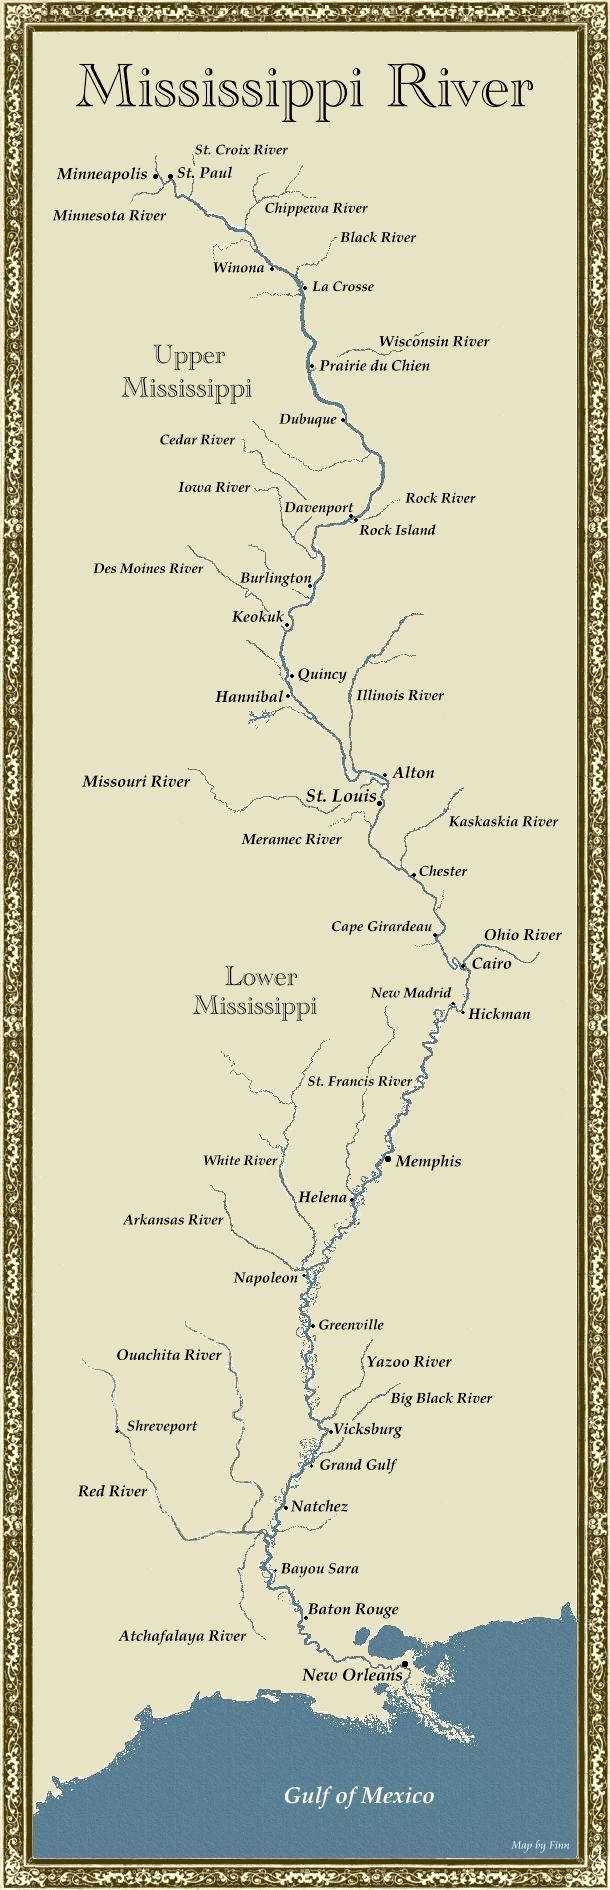 Mississippi River Map 111 best Maps